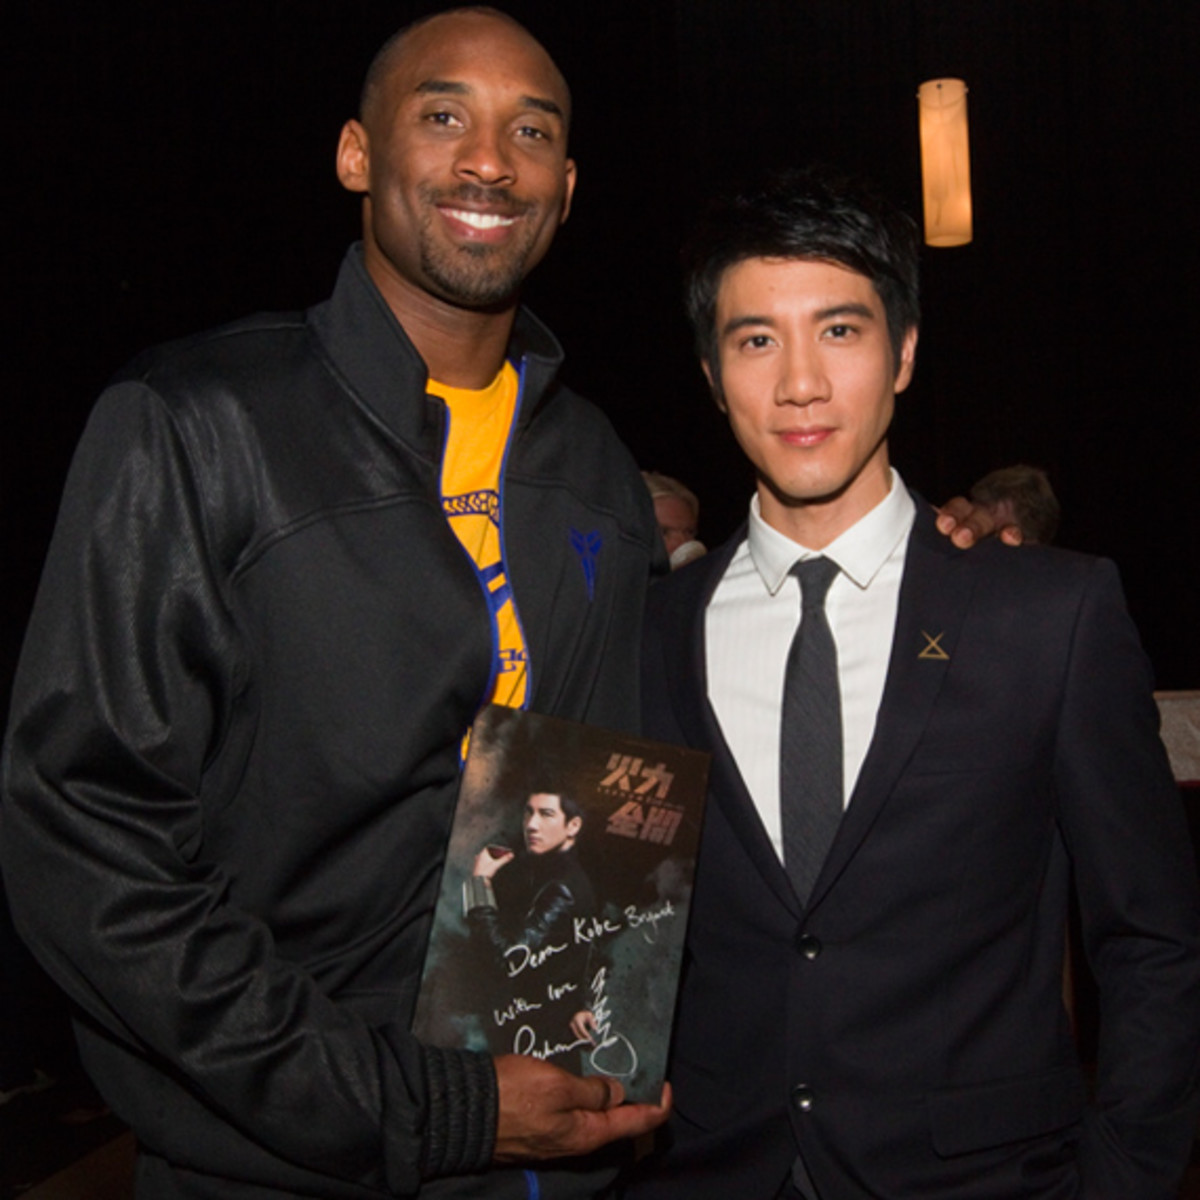 nike-kobesystem-success-for-the-successful-26